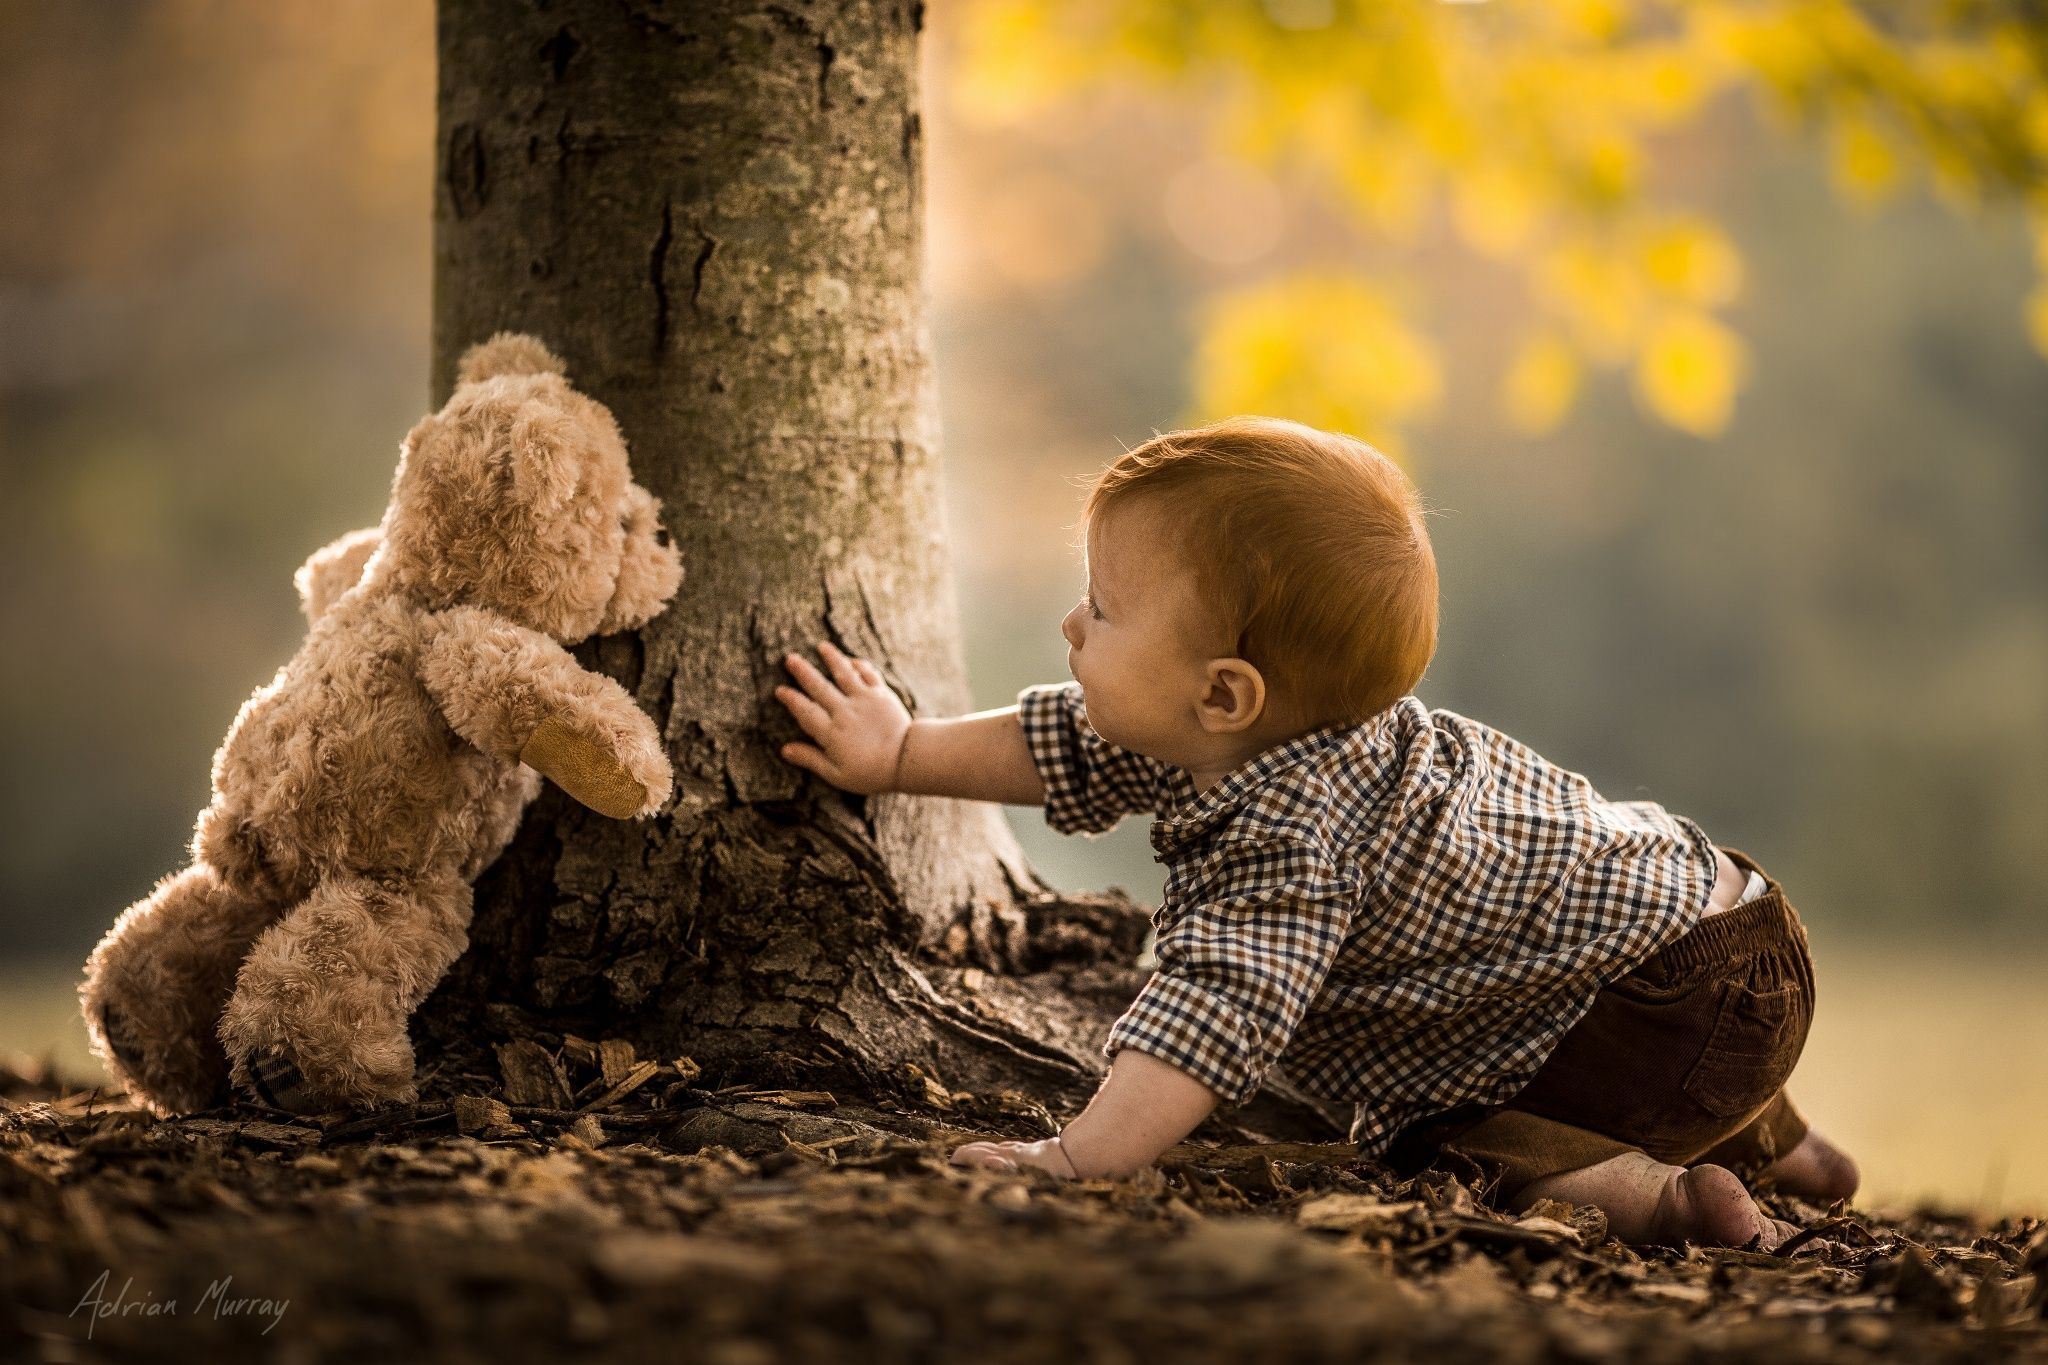 I've been away for a bit but that doesn't mean I've stopped taking photos! Here is our youngest playing hide and seek with our family teddy bear. :)  If you like my work you can follow me on Facebook at: www.facebook.com/adrianmurrayphotography  I'm on Twitter and Instagram as: adrmurray